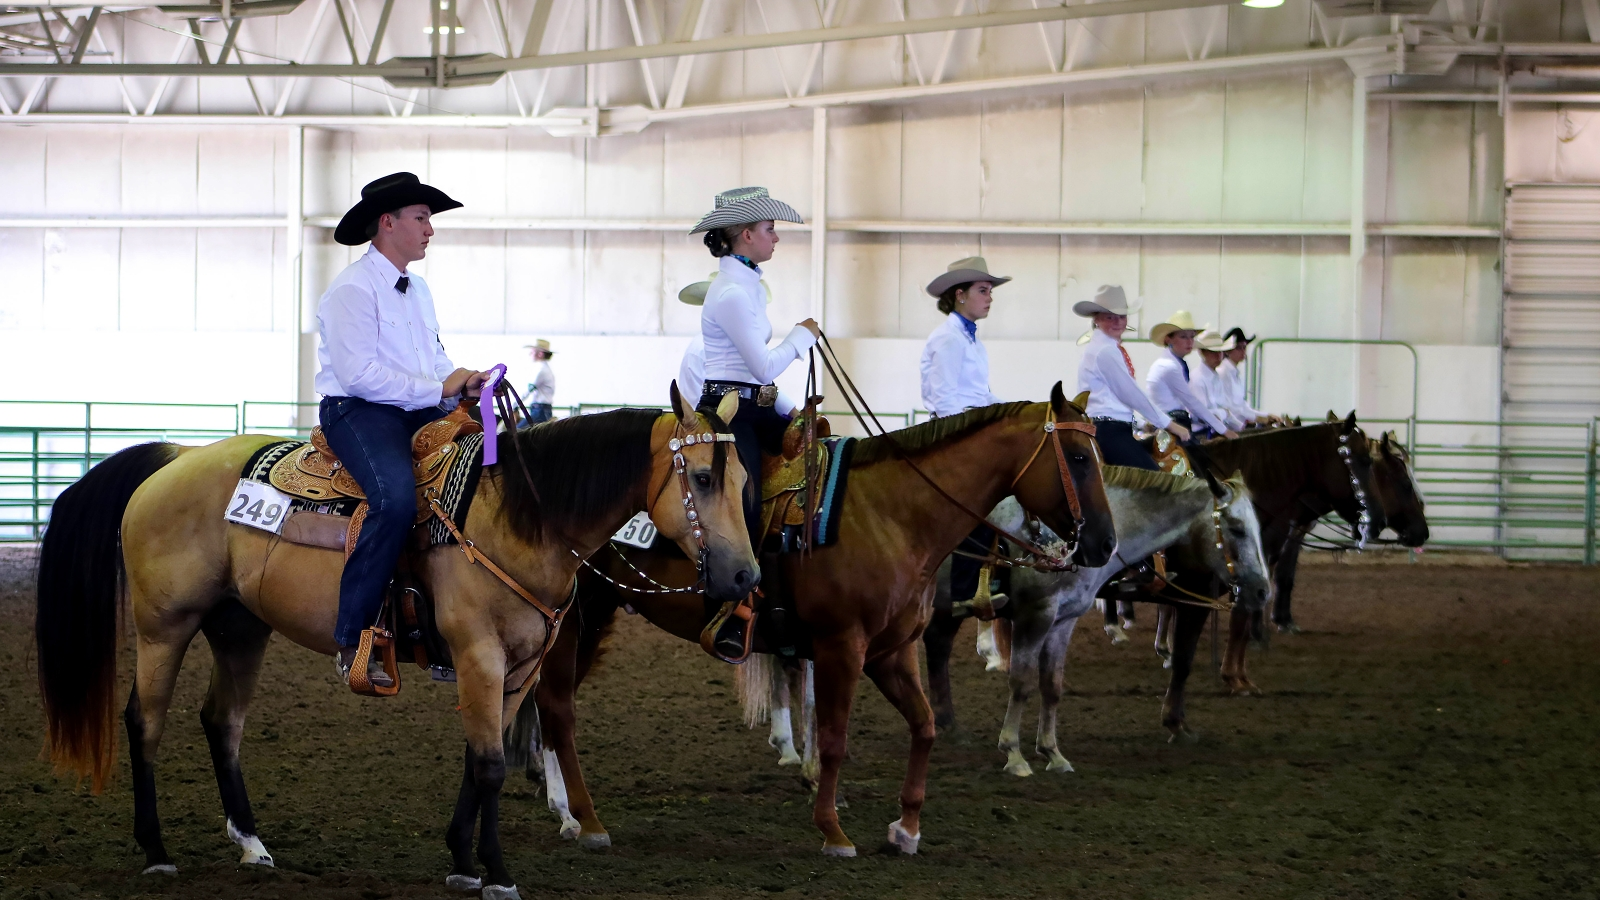 Horses and riders lined up